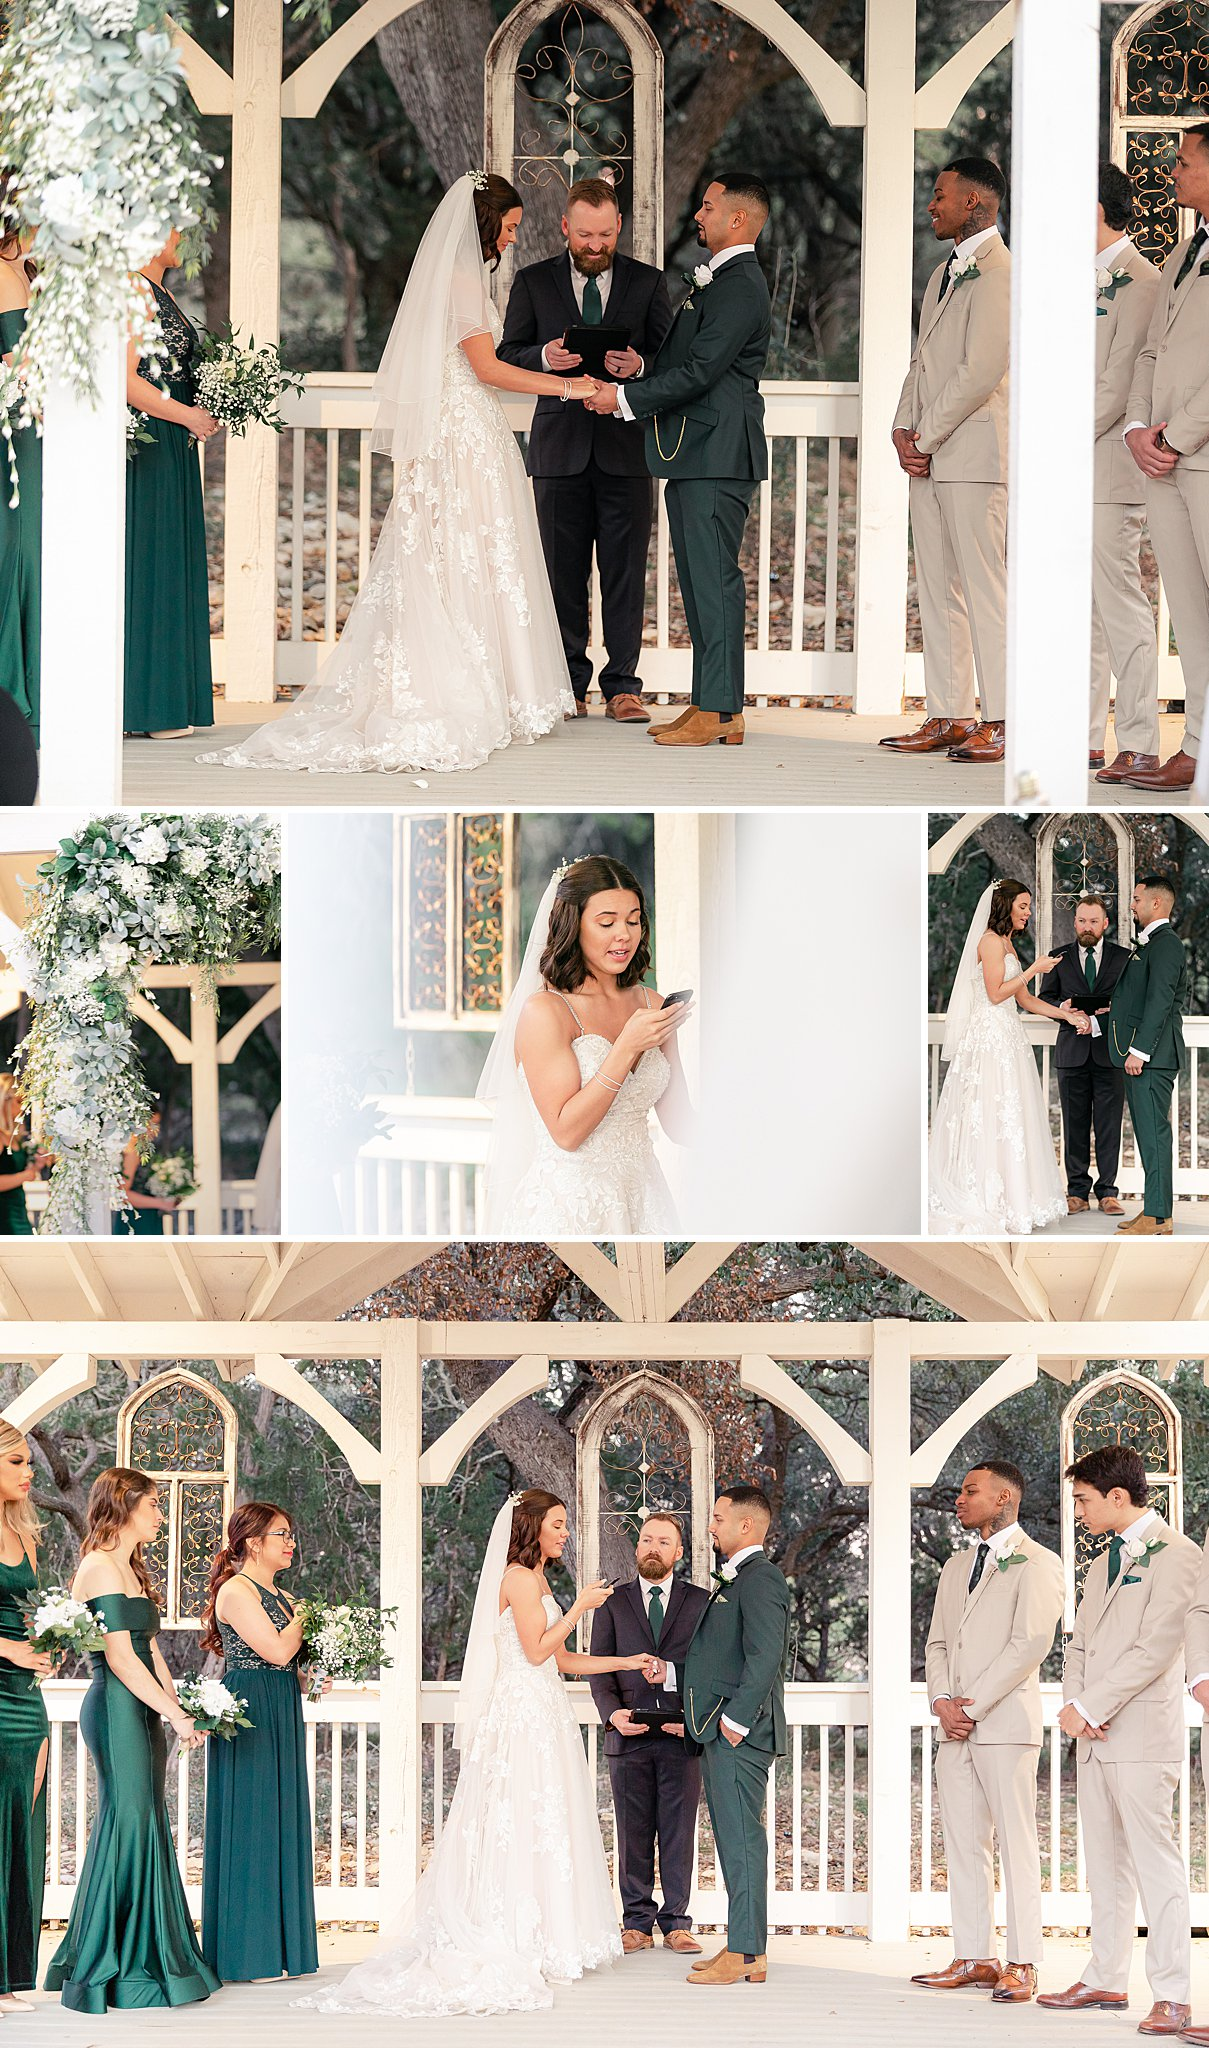 Carly-Barton-Photography-Texas-Wedding-Photographer-Western-Sky-Wedding-Event-Venue-Emerald-Green-Theme_0037.jpg